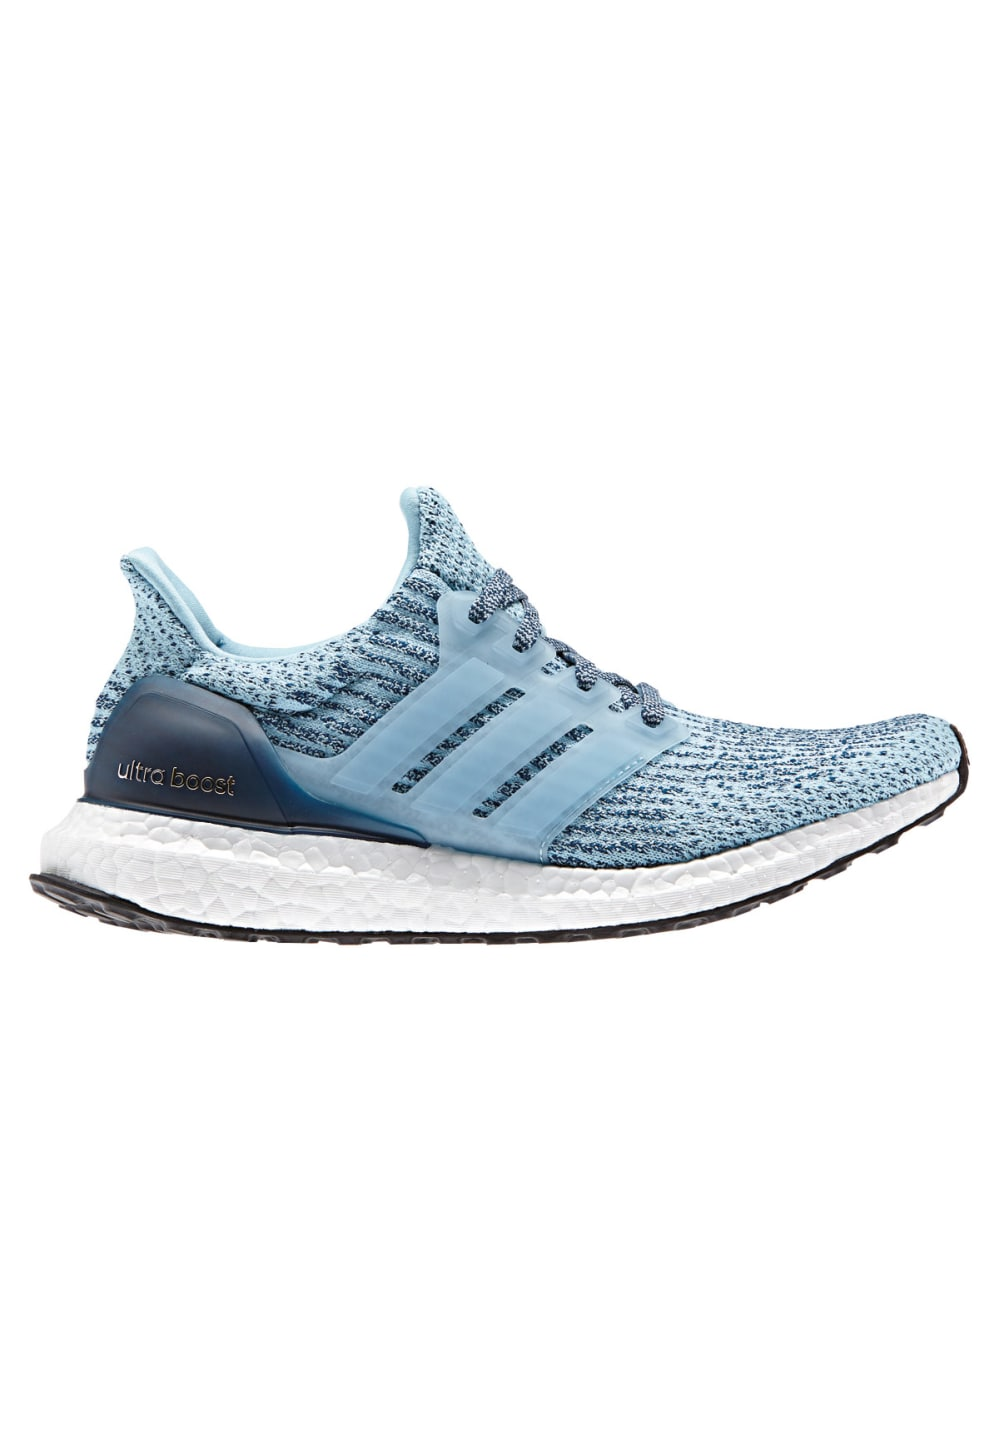 adidas Ultra Boost 3.0 Icey Blue (W)